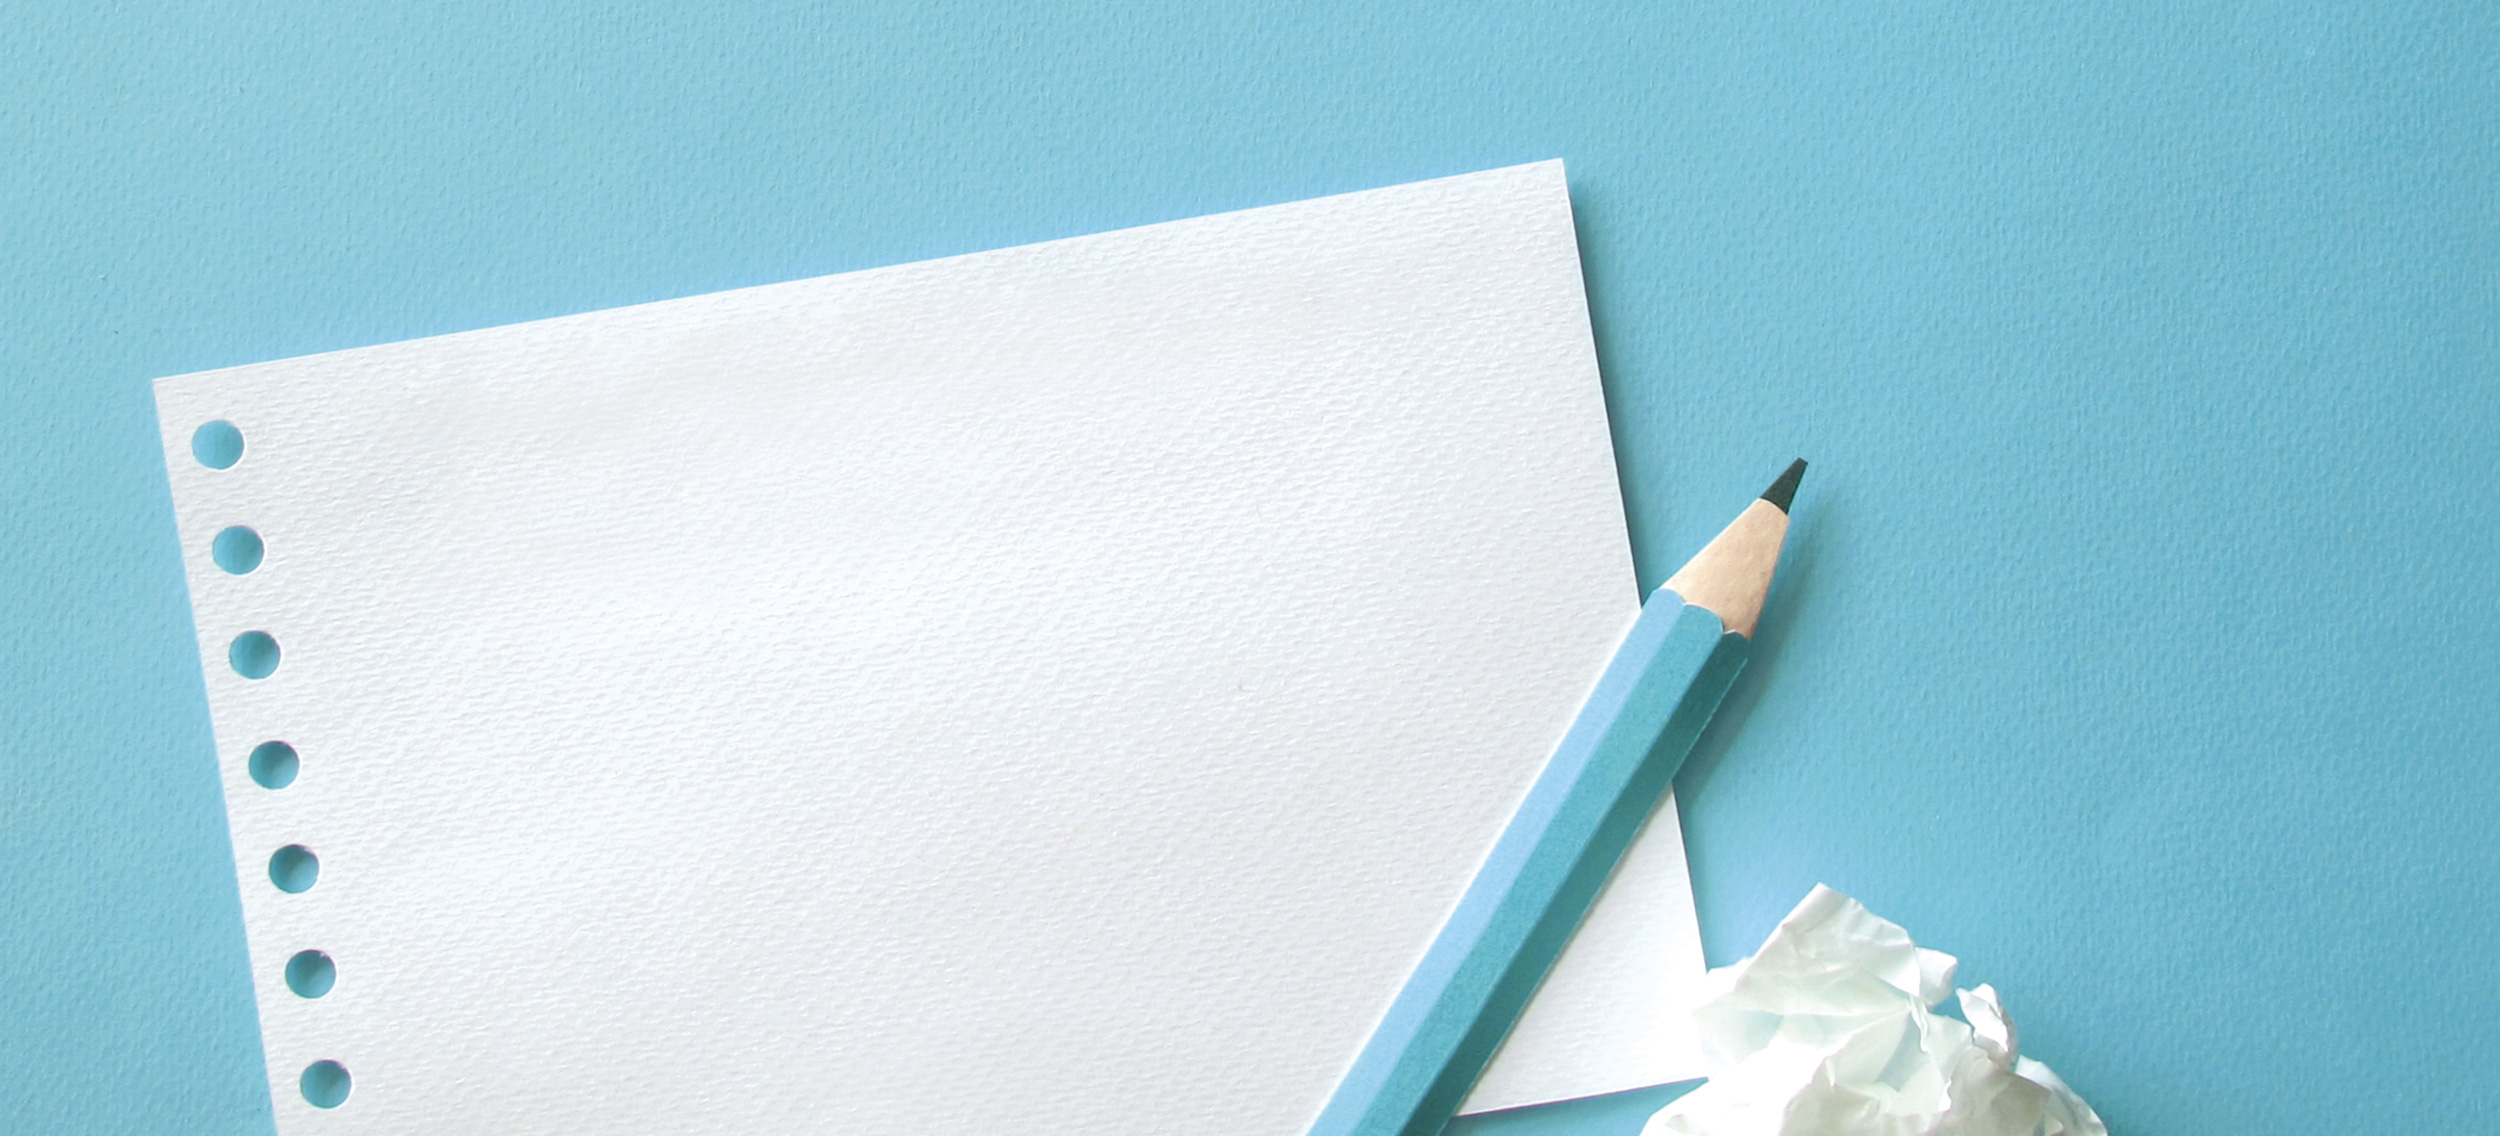 sheet-paper-pen-with-blue-background